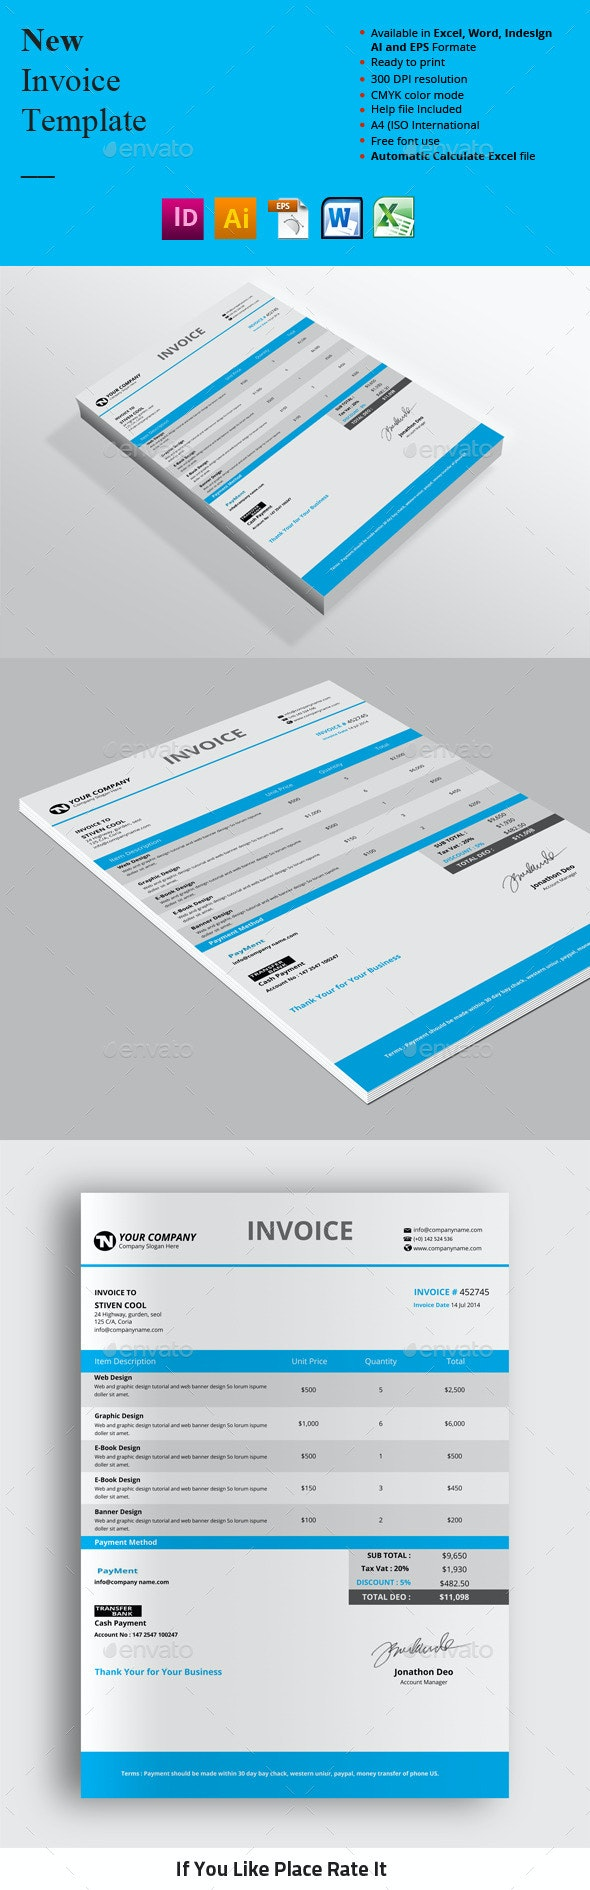 New Invoice Templates - Proposals & Invoices Stationery